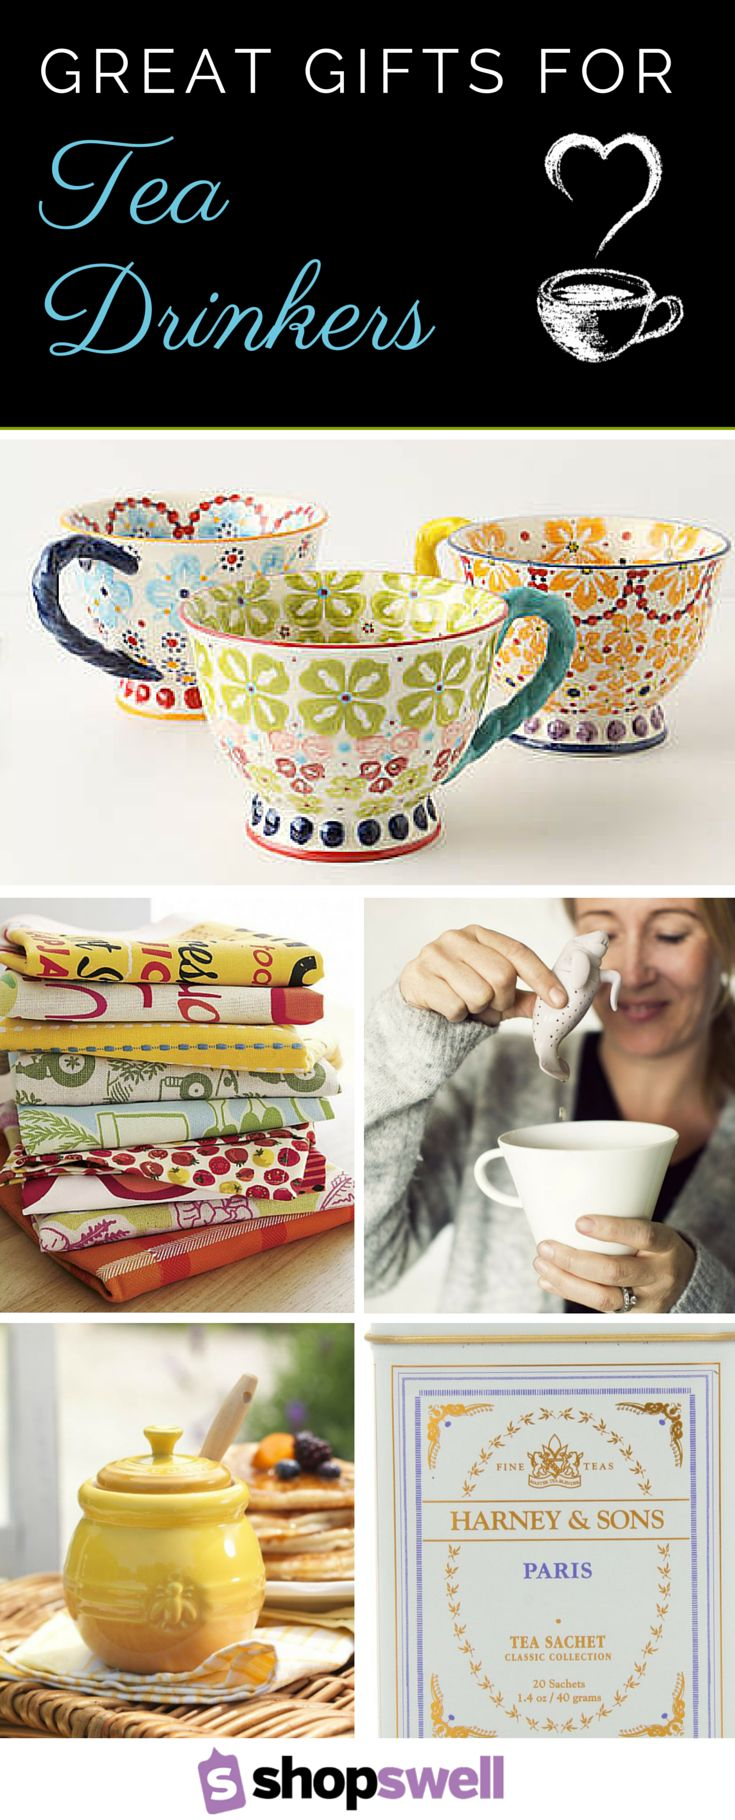 Over 20 Great Gift Ideas for Tea Drinkers